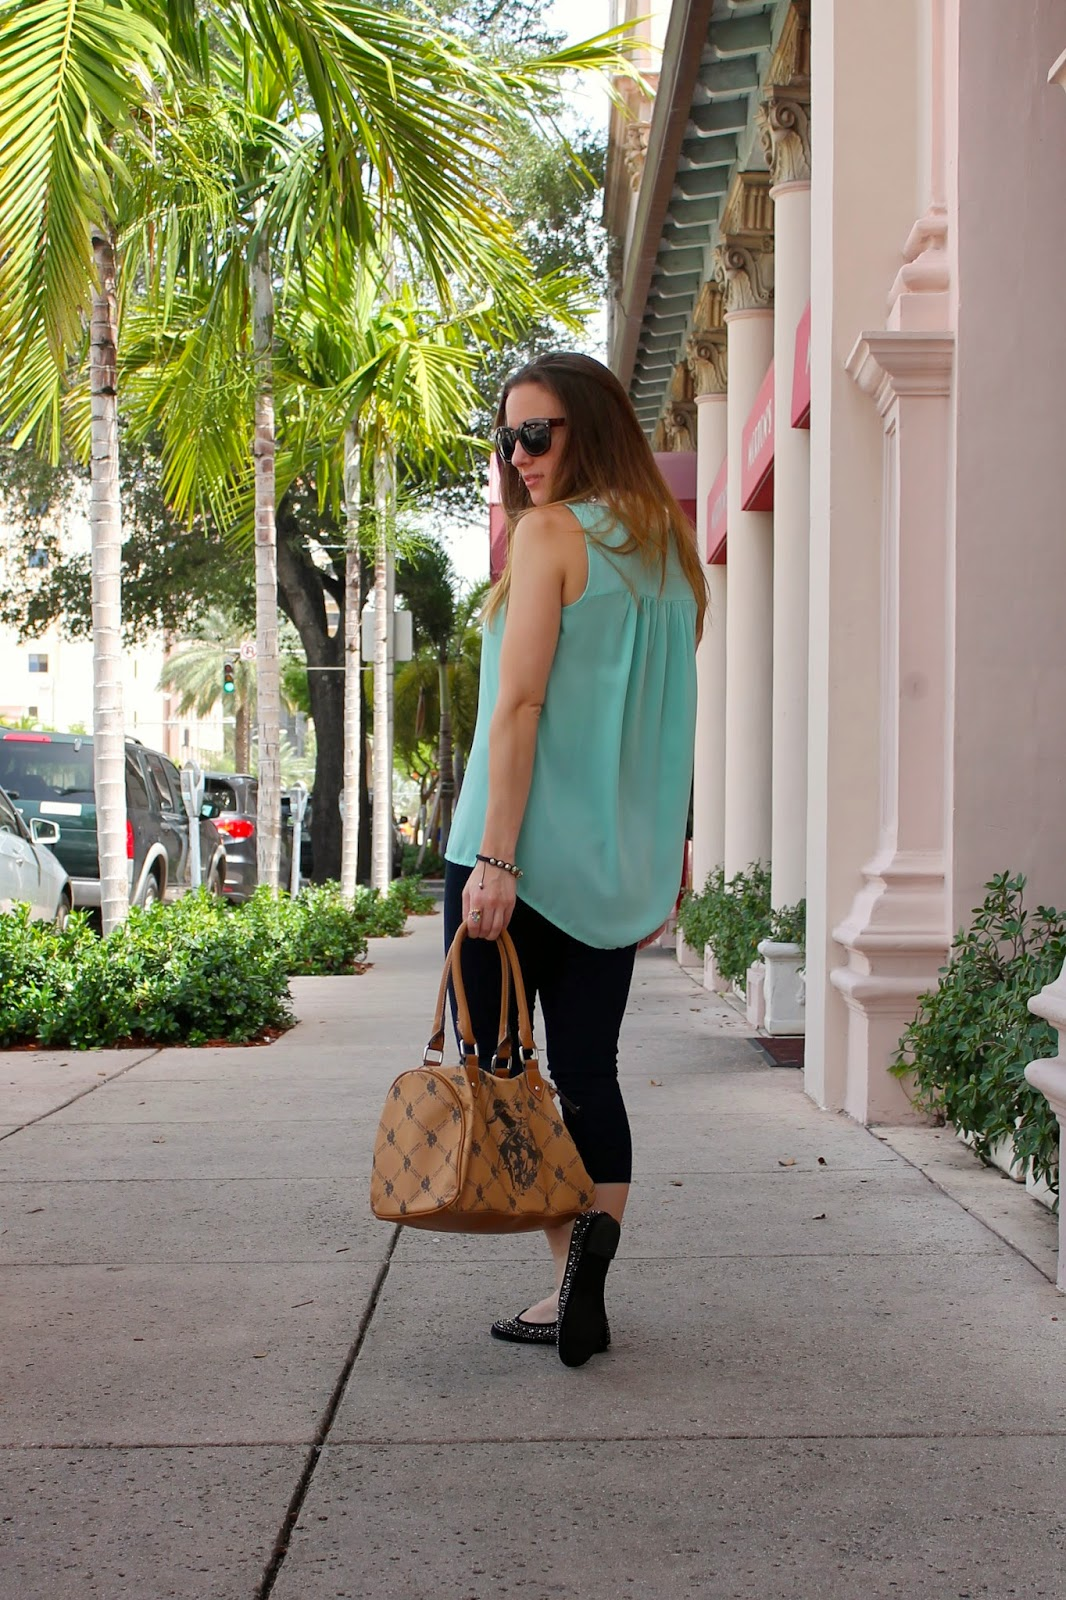 Franchesca's, Lysse, Nordstrom, classic, prep, Miami, fashion blog, southern, Target, driver's flats, studded, ootd, Miami fashion blog, style blog, style, fashion